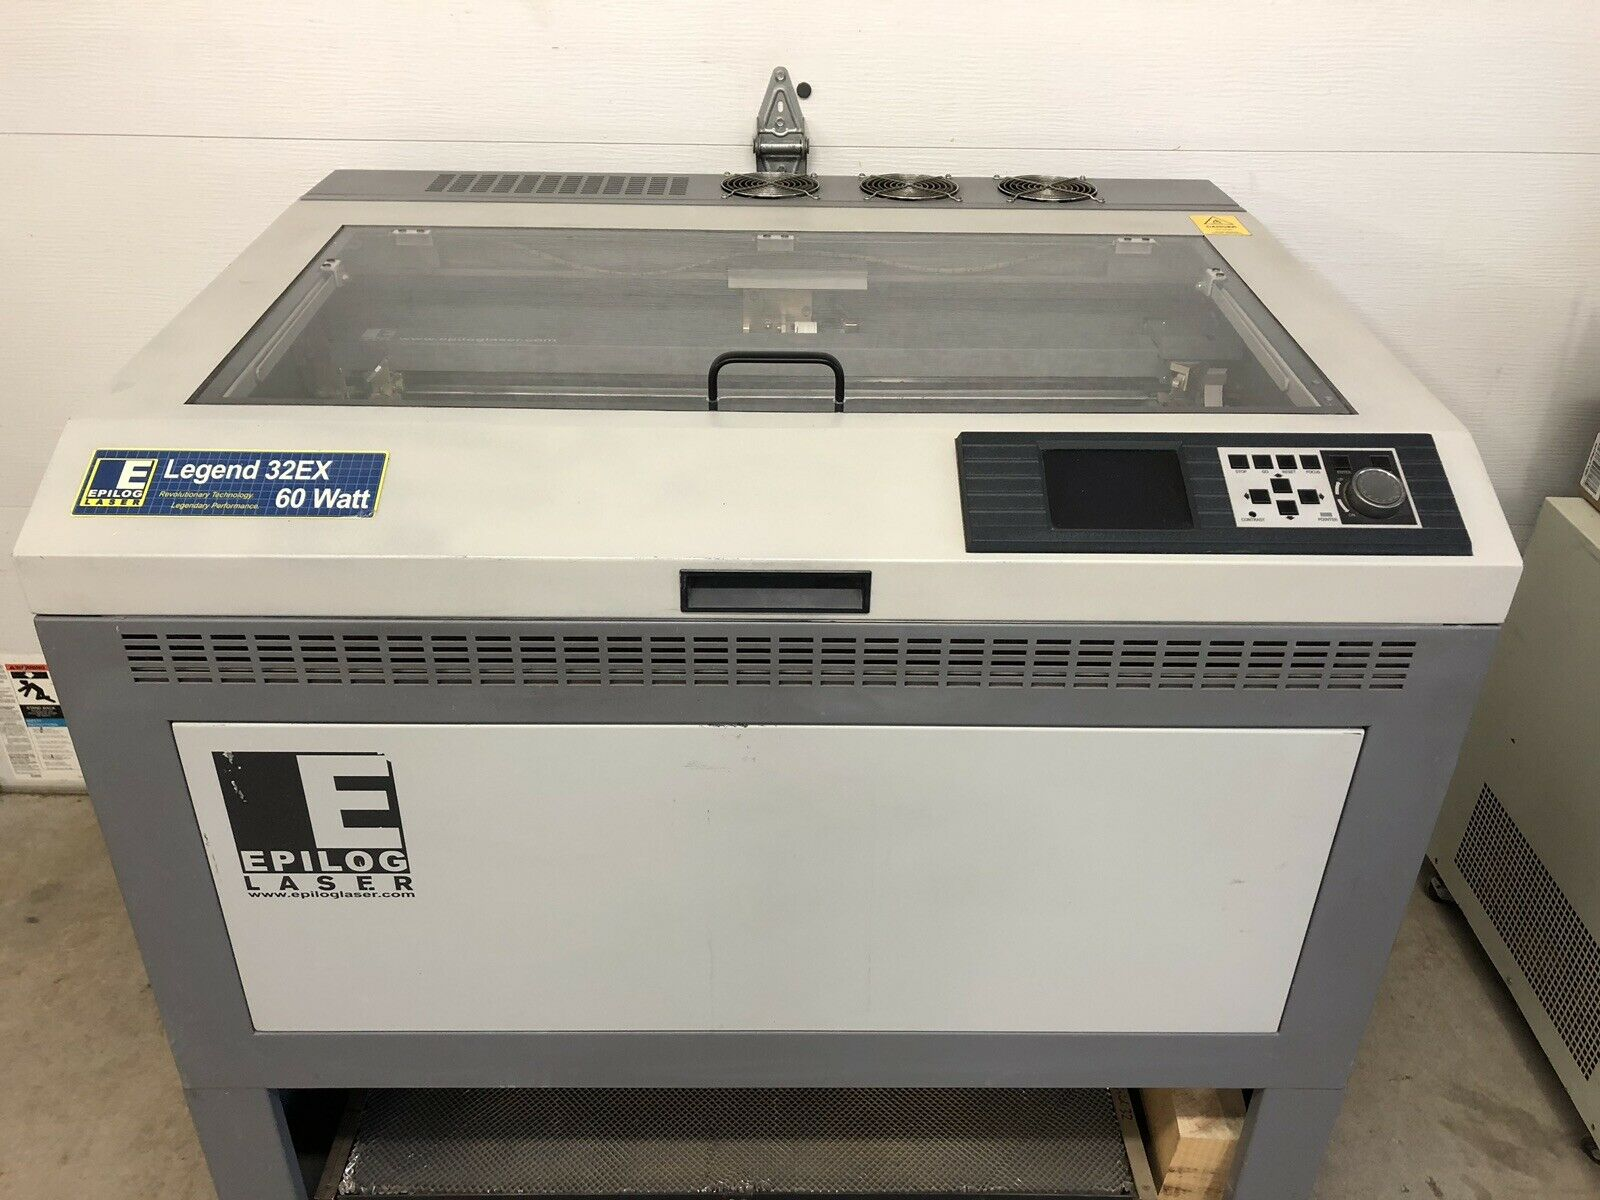 Photo Epilog Laser Legend 32EX 60 Watt